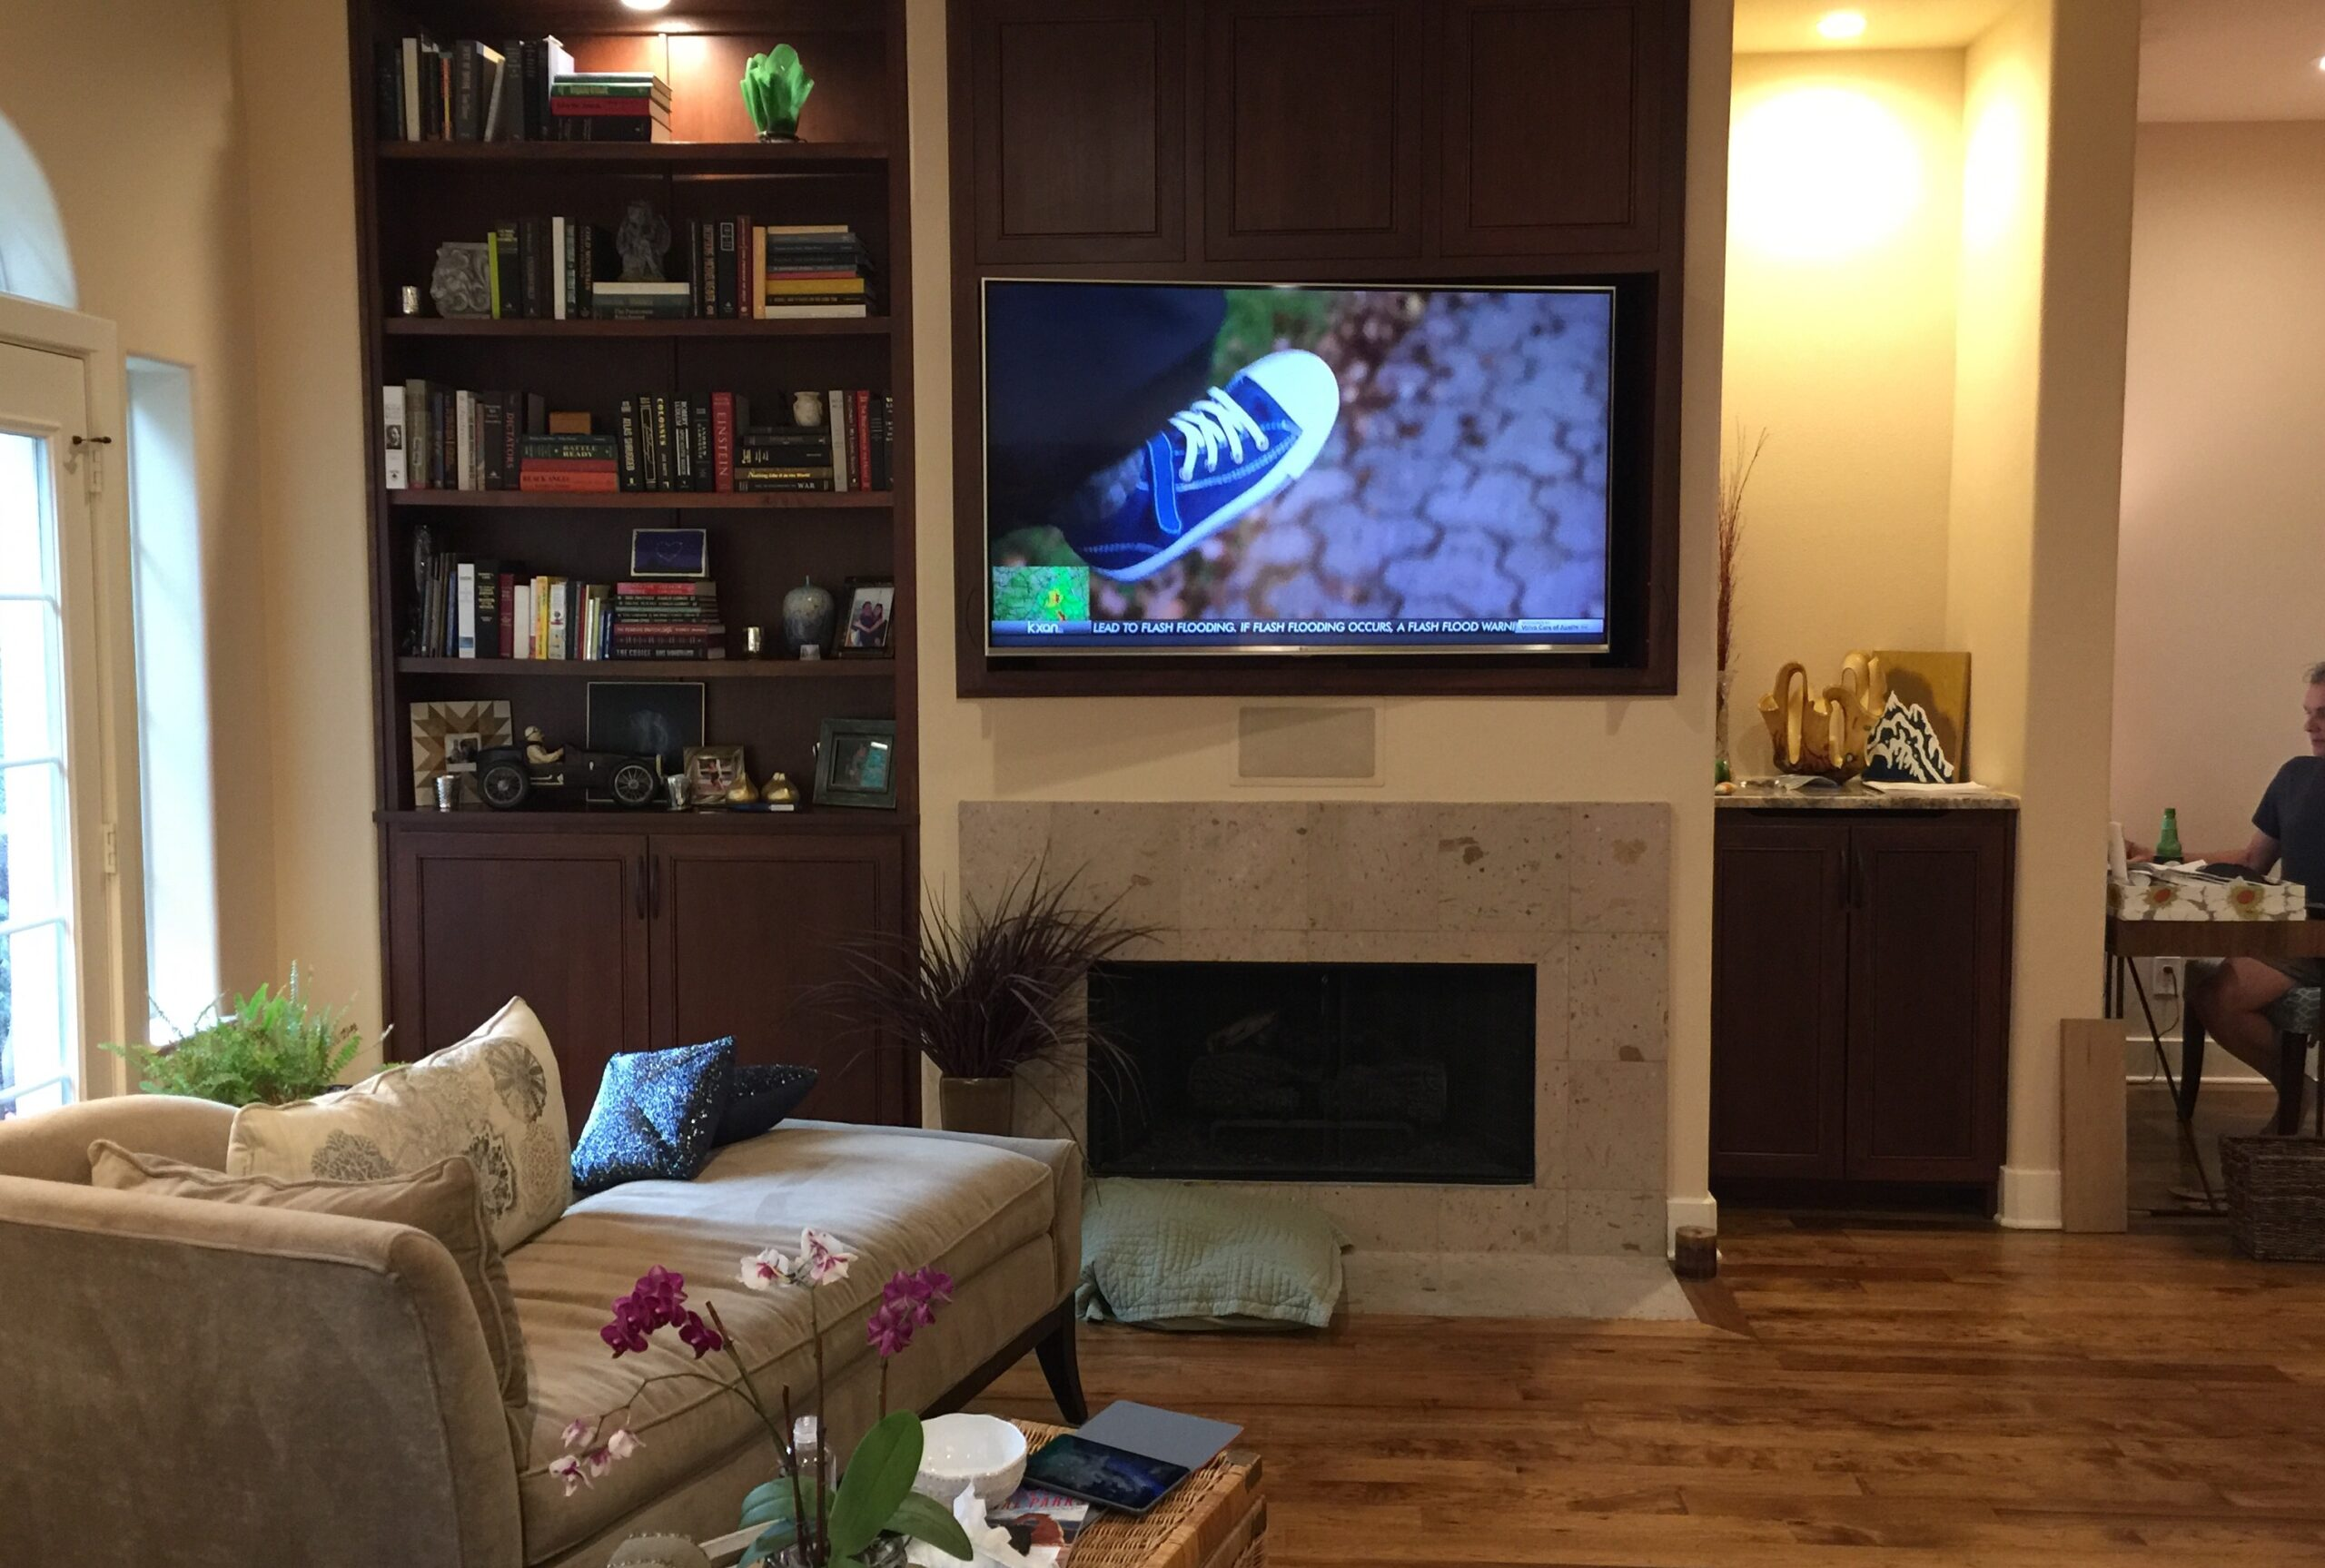 Media room with hidden speakers and TV installed in wall above fireplace